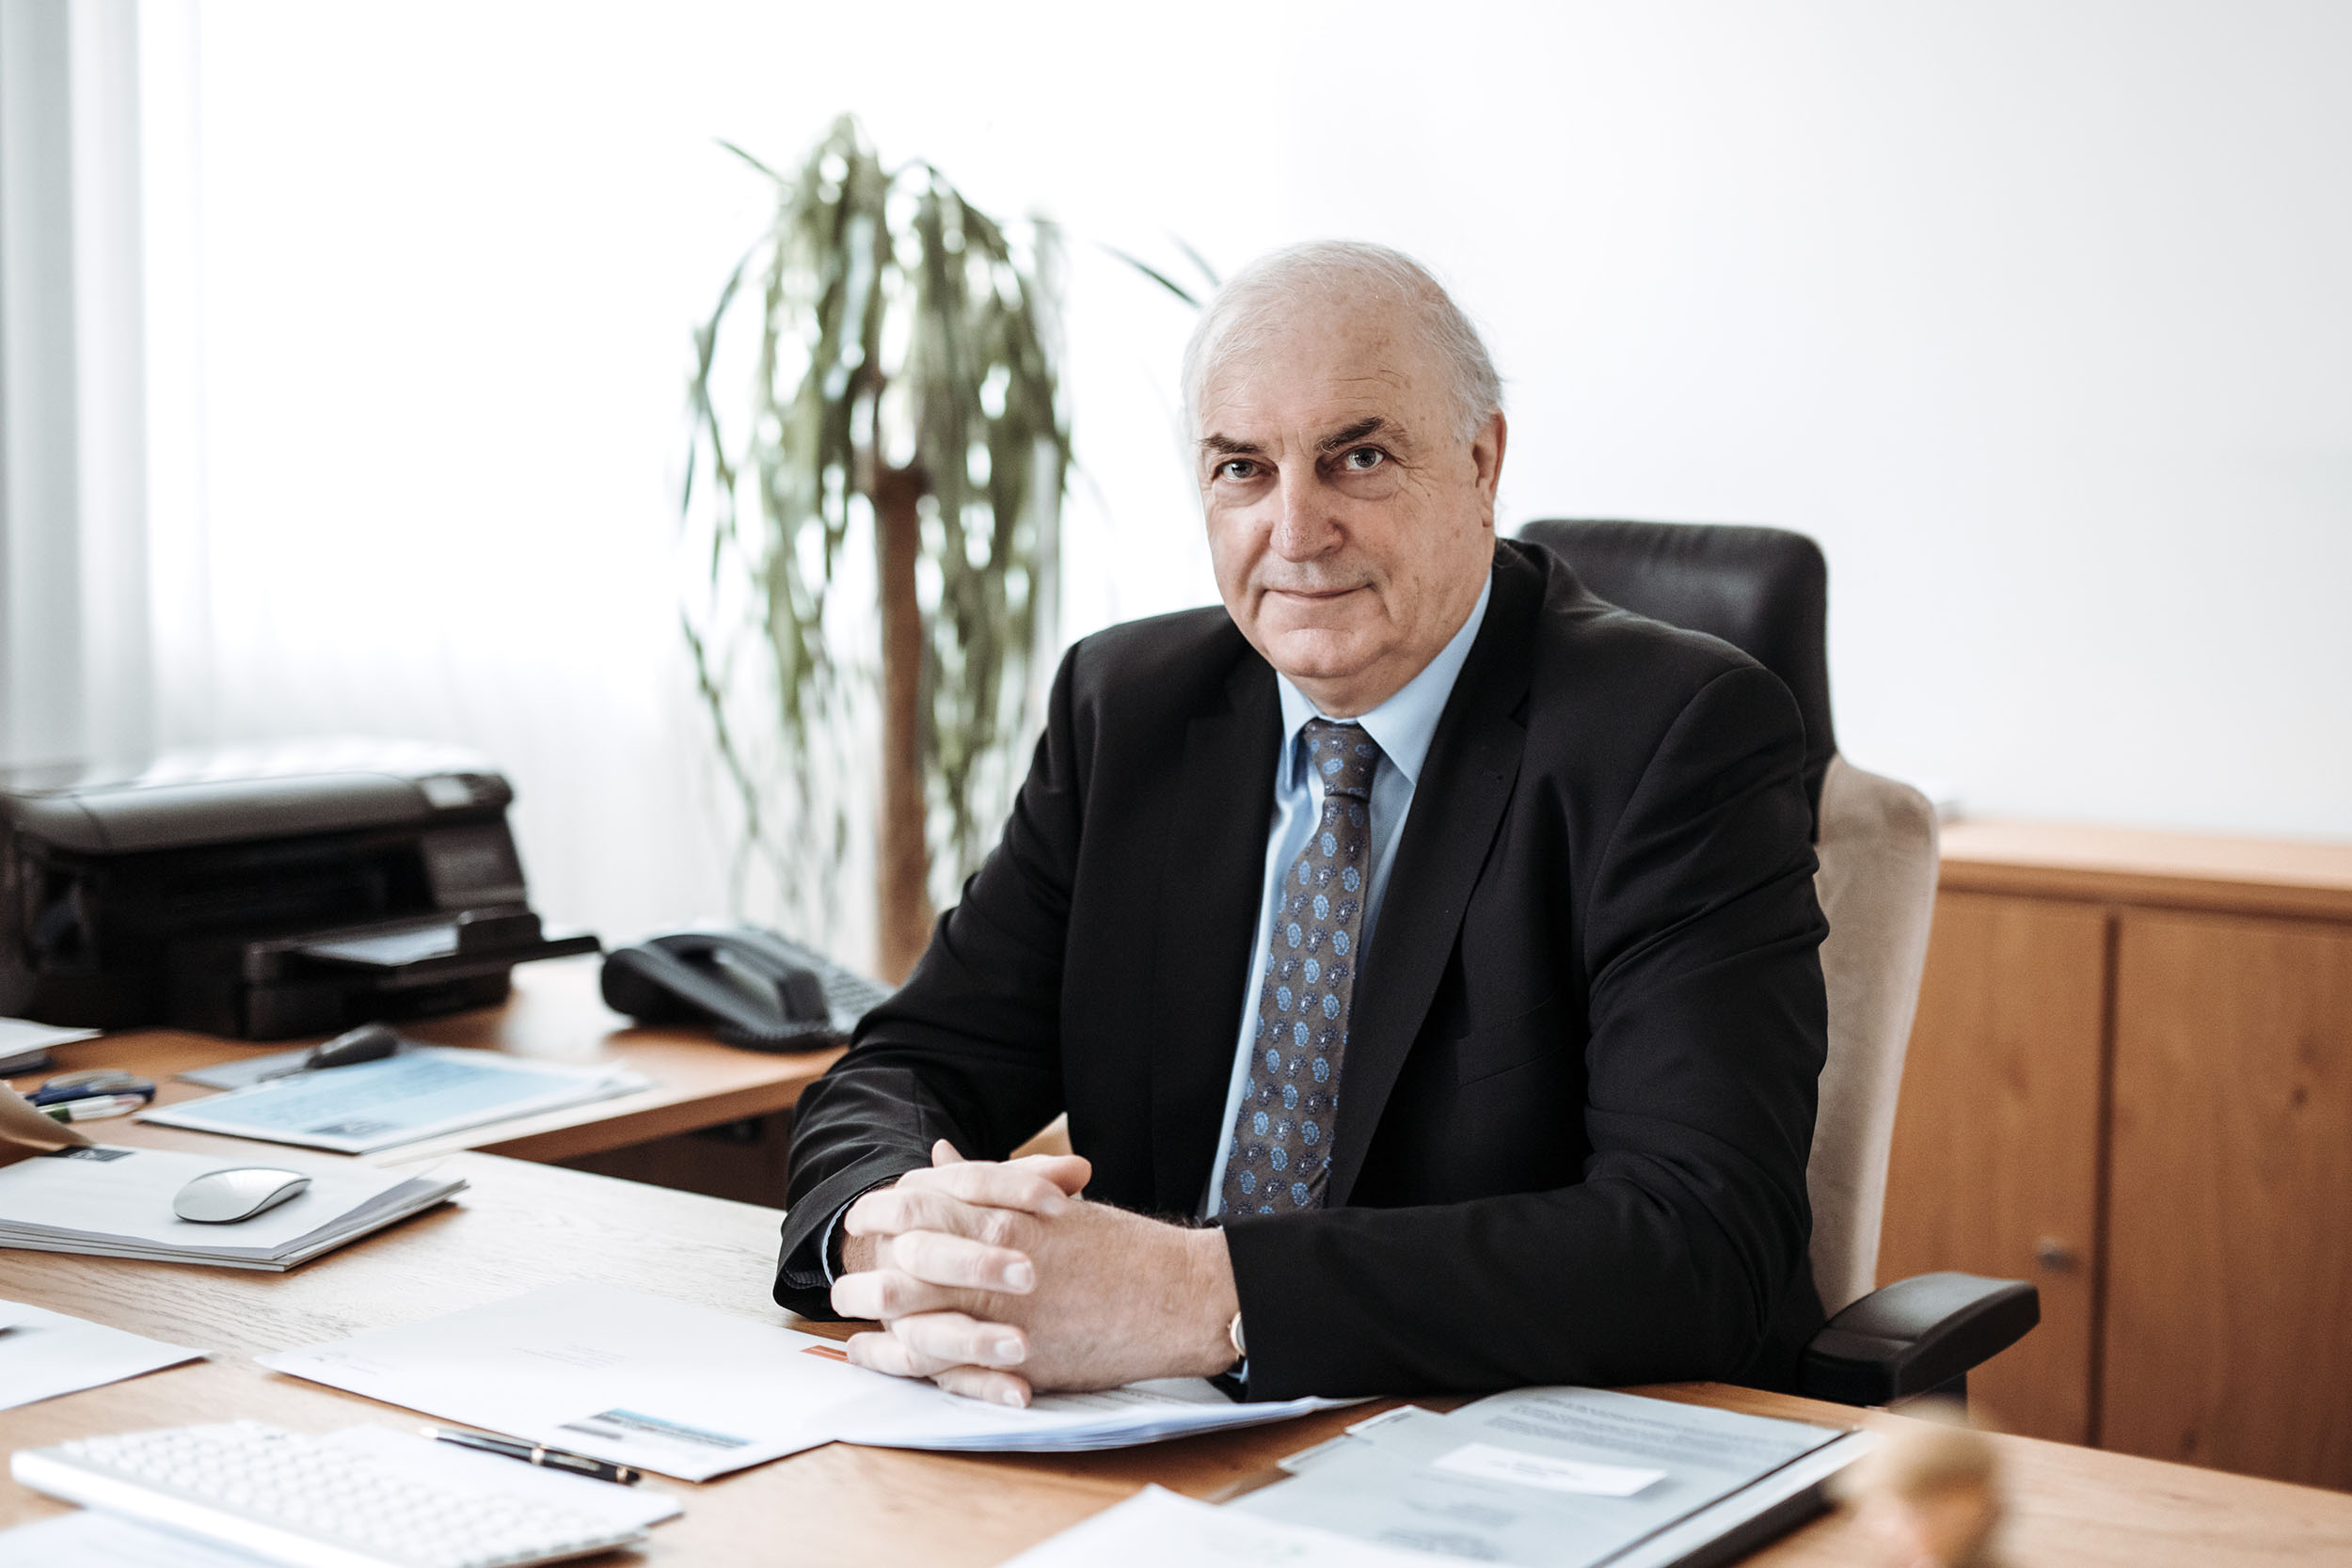 Charles Goerens is sitting at his desk.